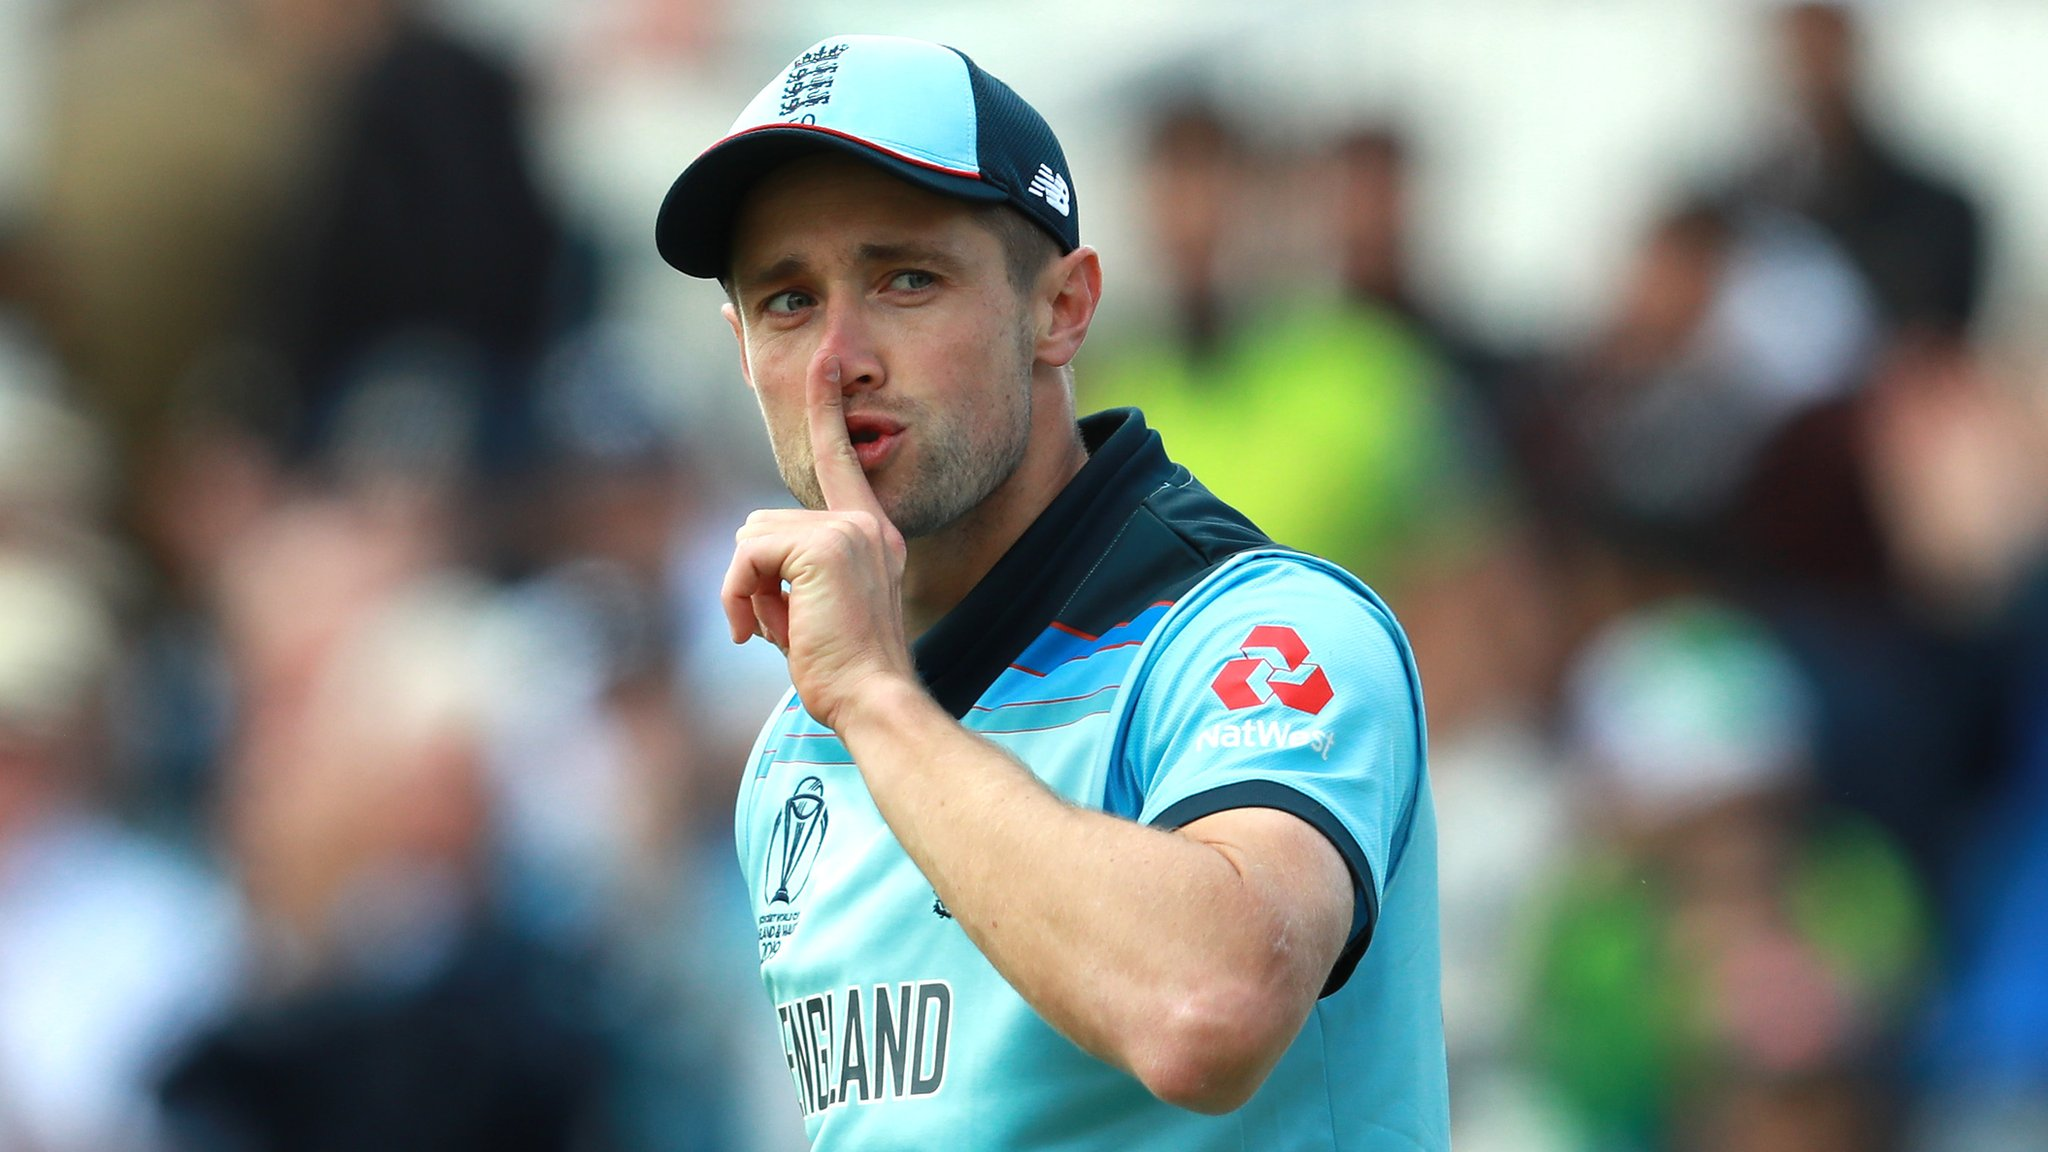 Cricket World Cup: England's Chris Woakes on the art of death bowling